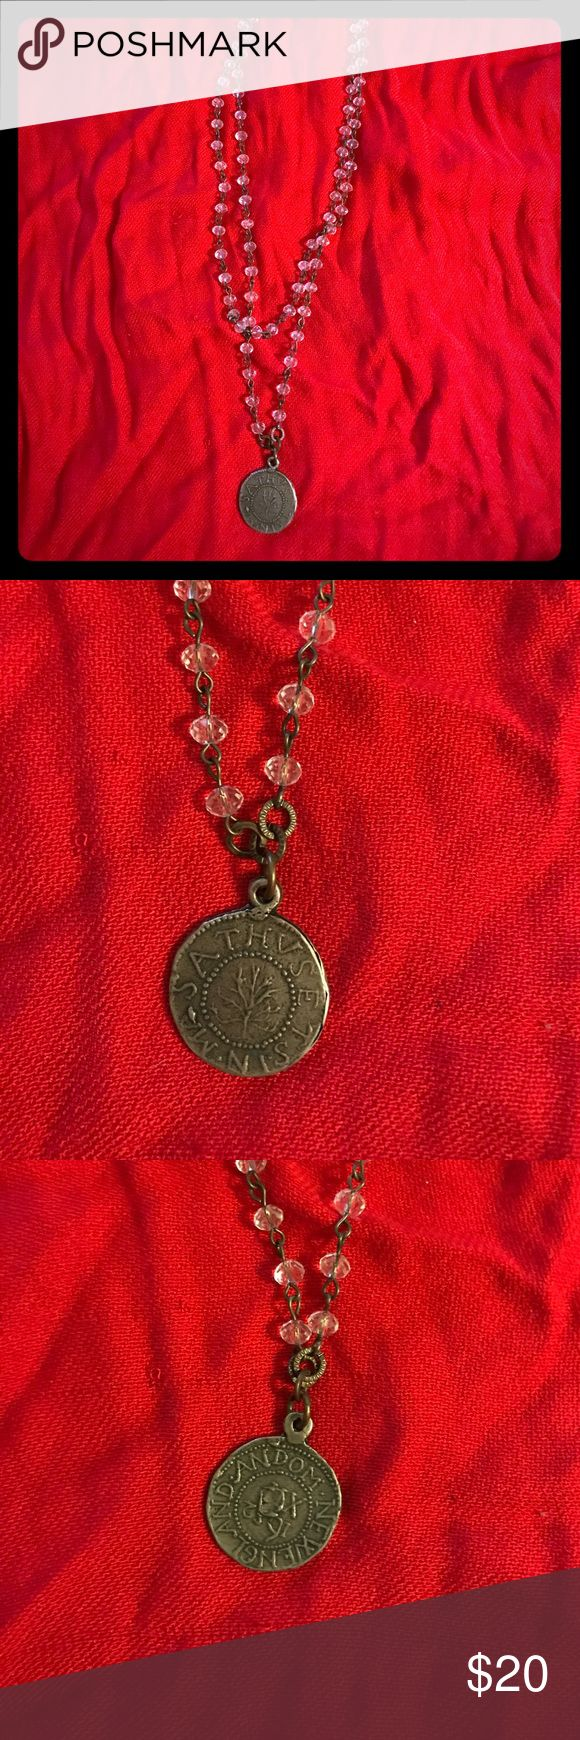 Layered coin necklace Layered coin necklace. The coin has two different impressions on each side so can wear either way. Jewelry Necklaces